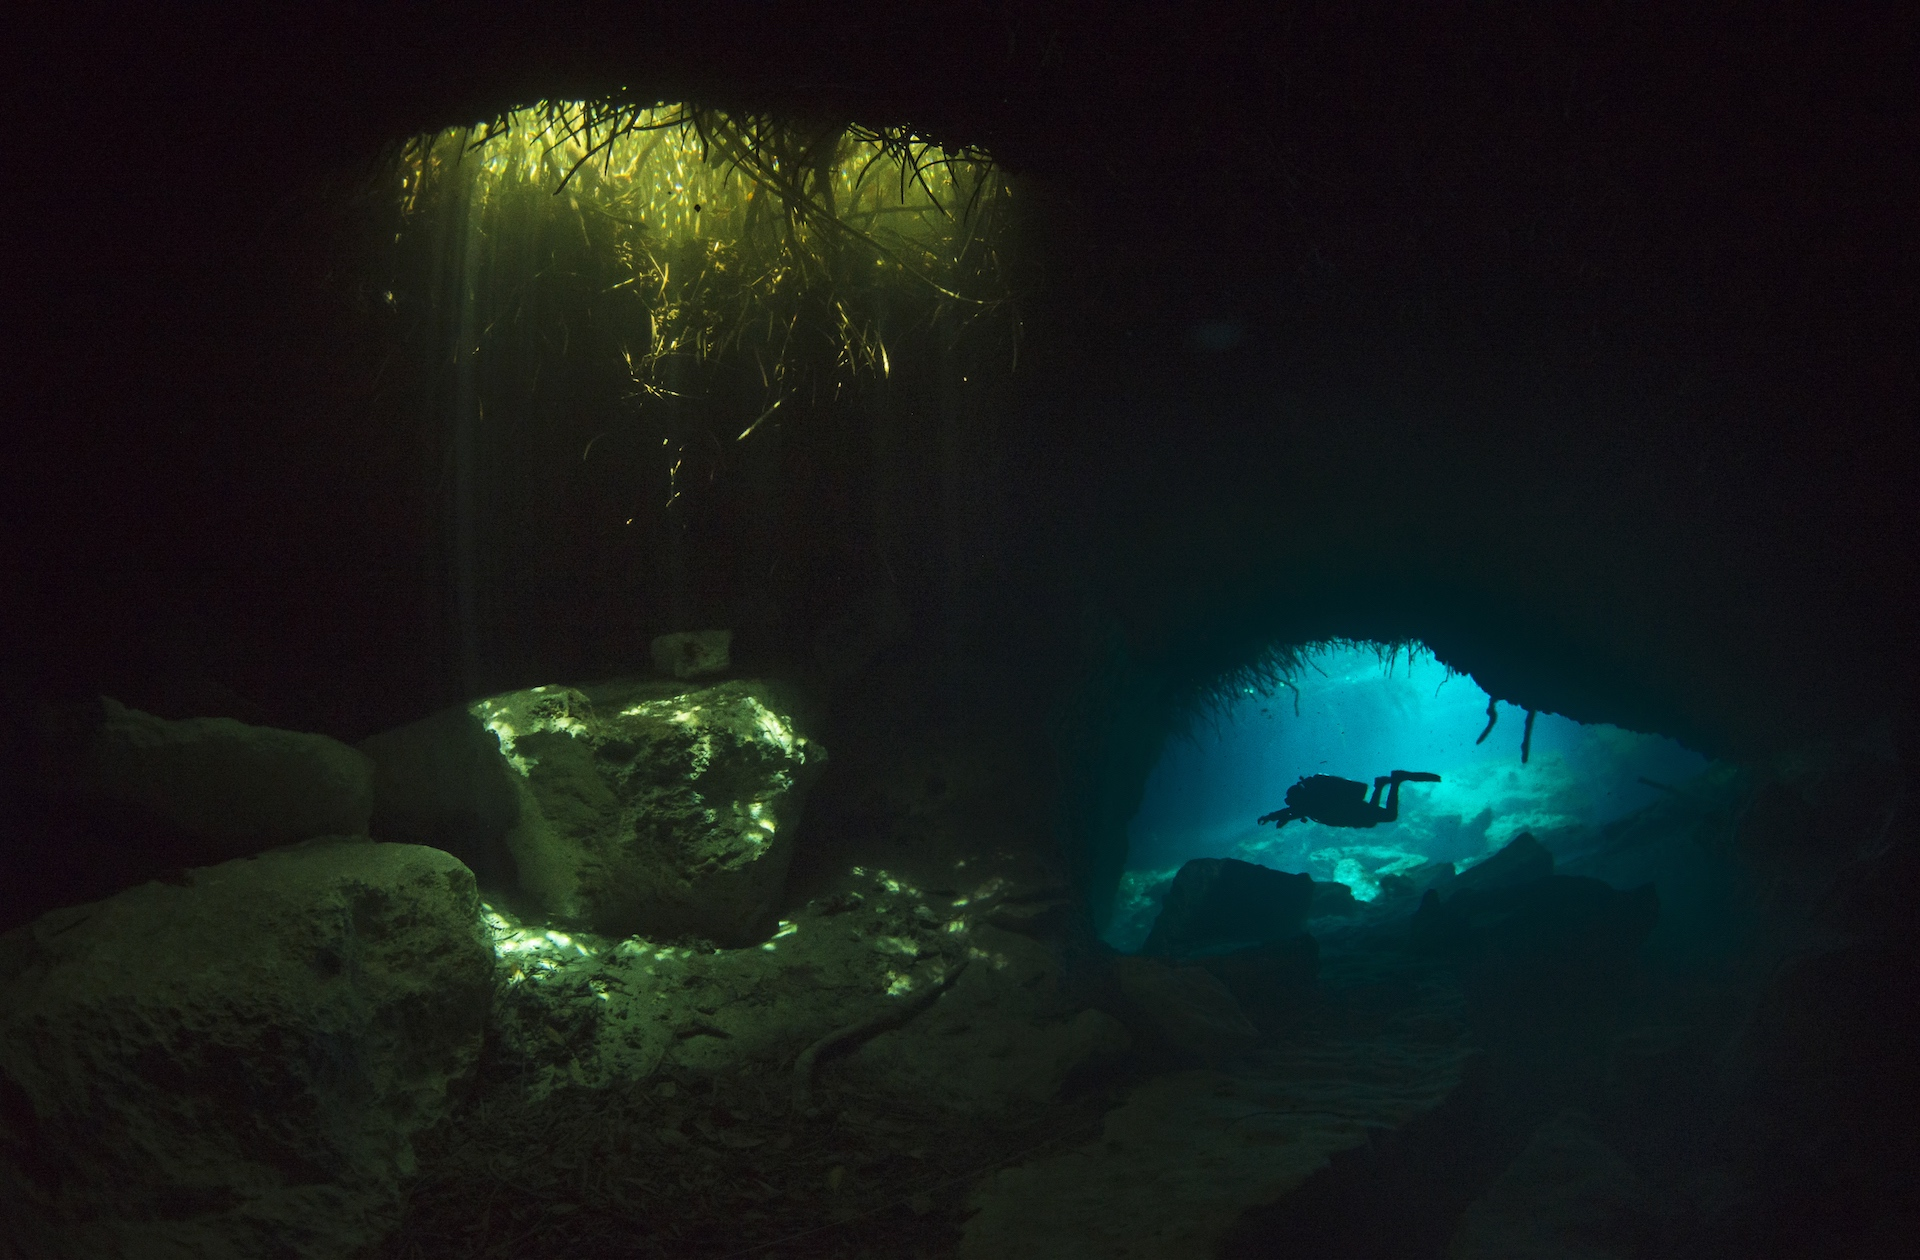 Narrow passages lead to caves and caverns in Casa Cenote. This cenote connects a very long underwater cave system, called Nohoch Na Chich, to the Caribbean Sea. Wherever there are surface openings, light streams in through the clear turquoise waters highlighting rock formations and small schools of fresh and seawater fish.